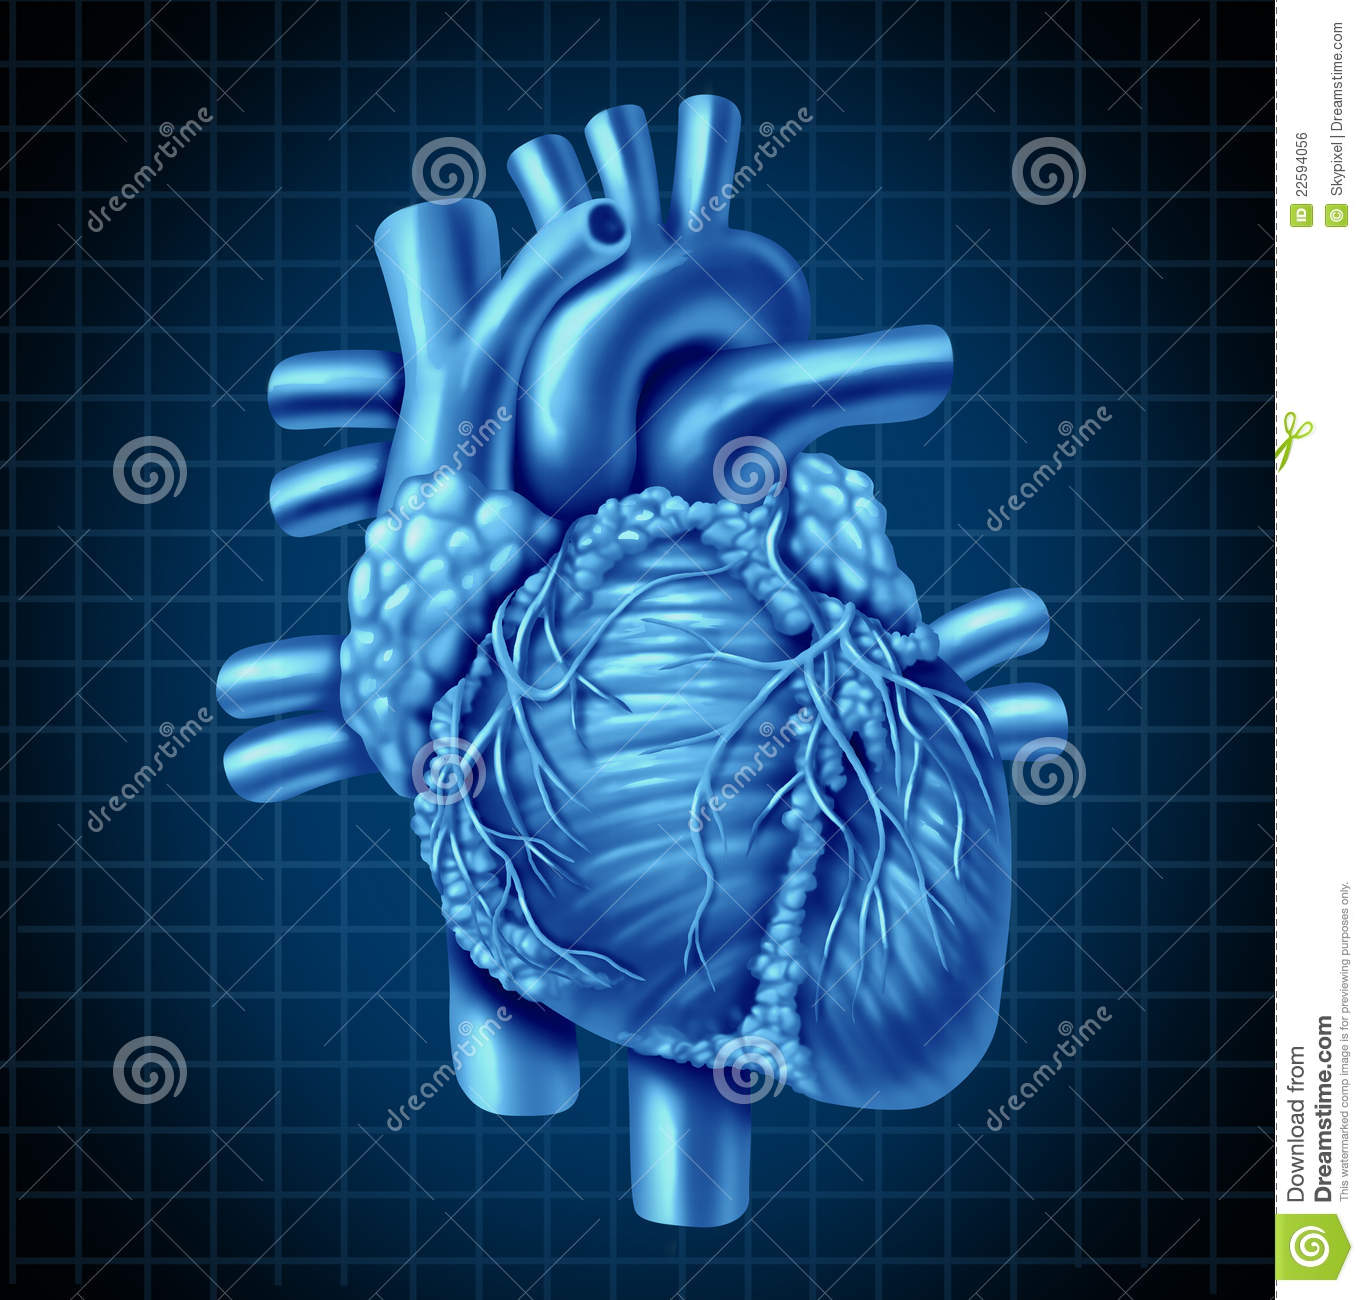 Human heart anatomy from a healthy body on a blue and black graph ...